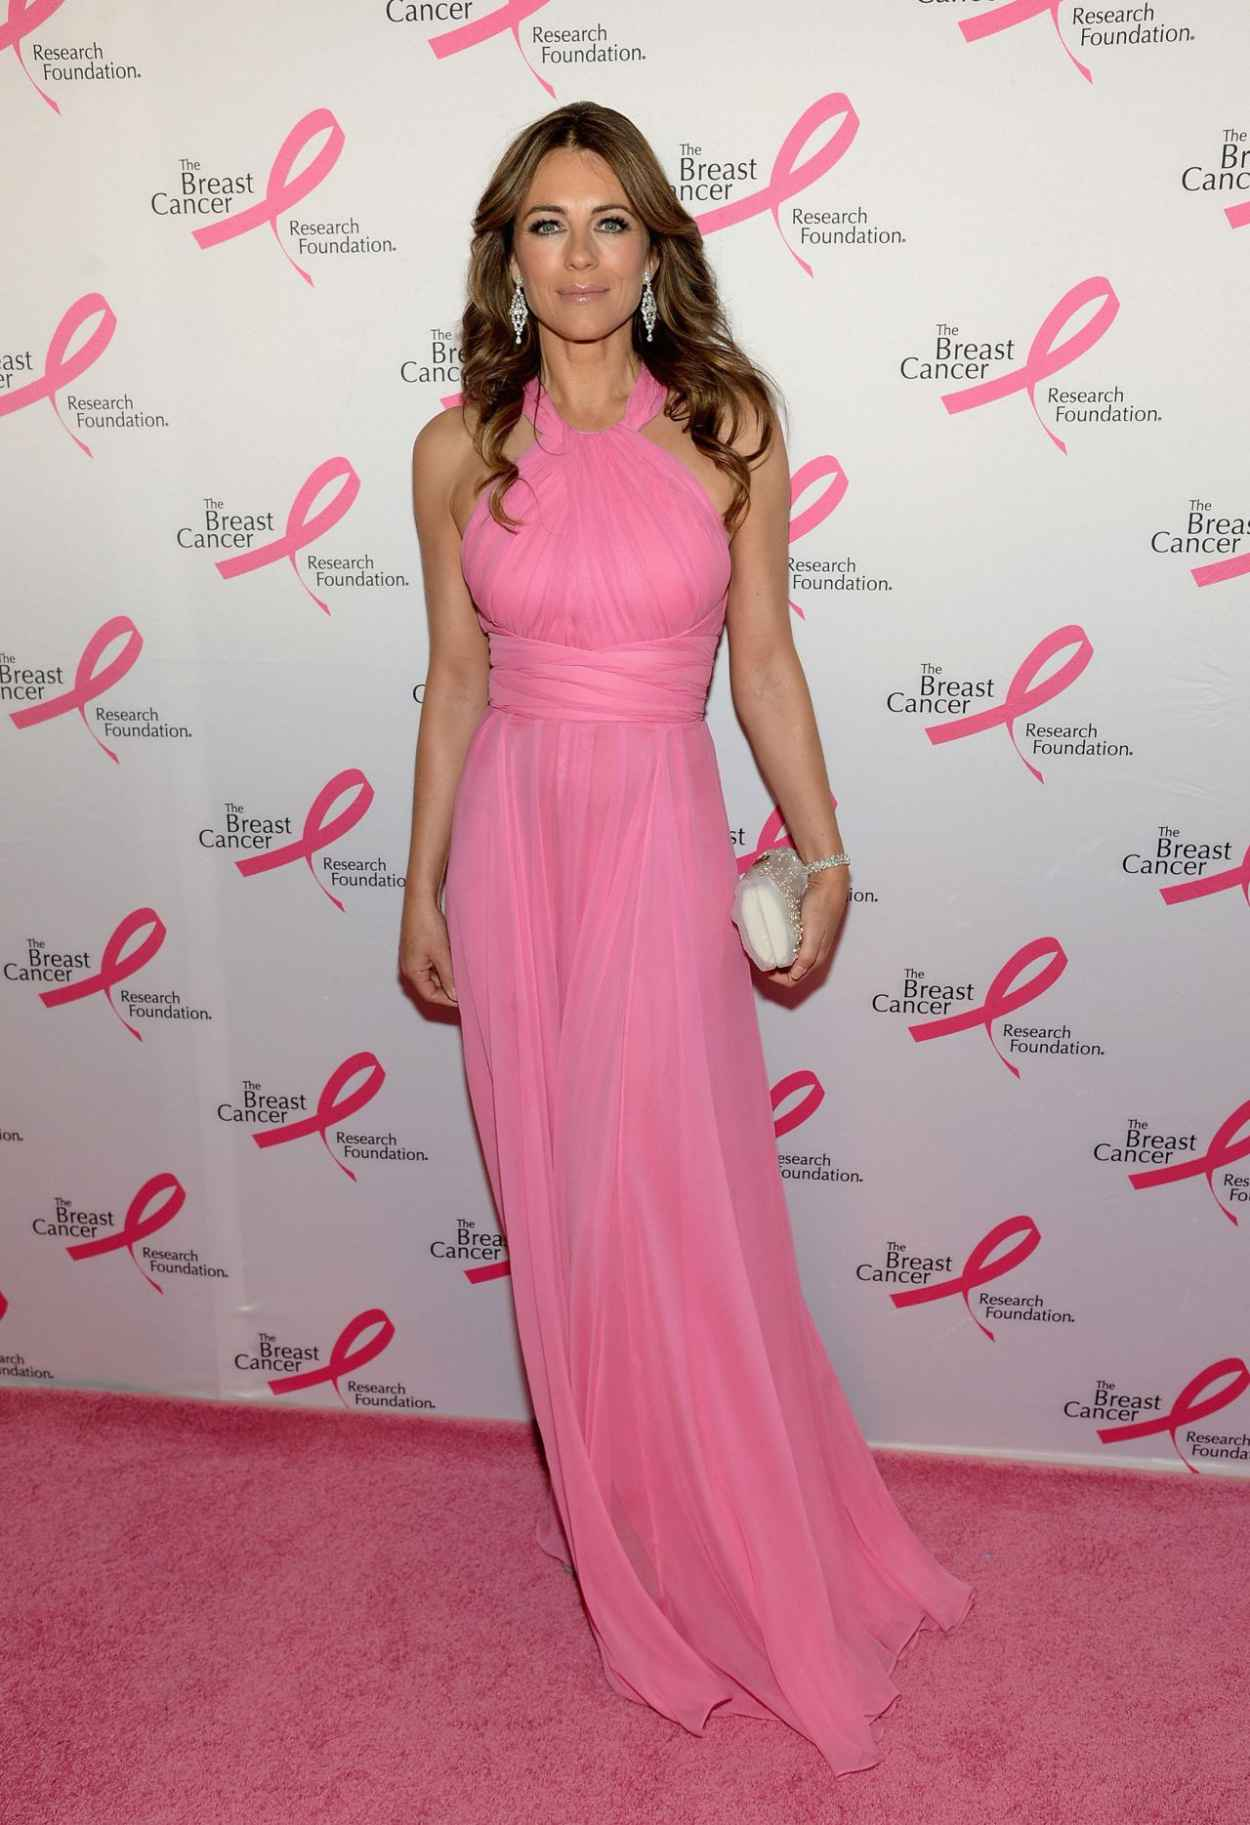 Elizabeth Hurley in Versace Gown - The Breast Cancer Foundations 2015 Hot Pink Party in New york City-1